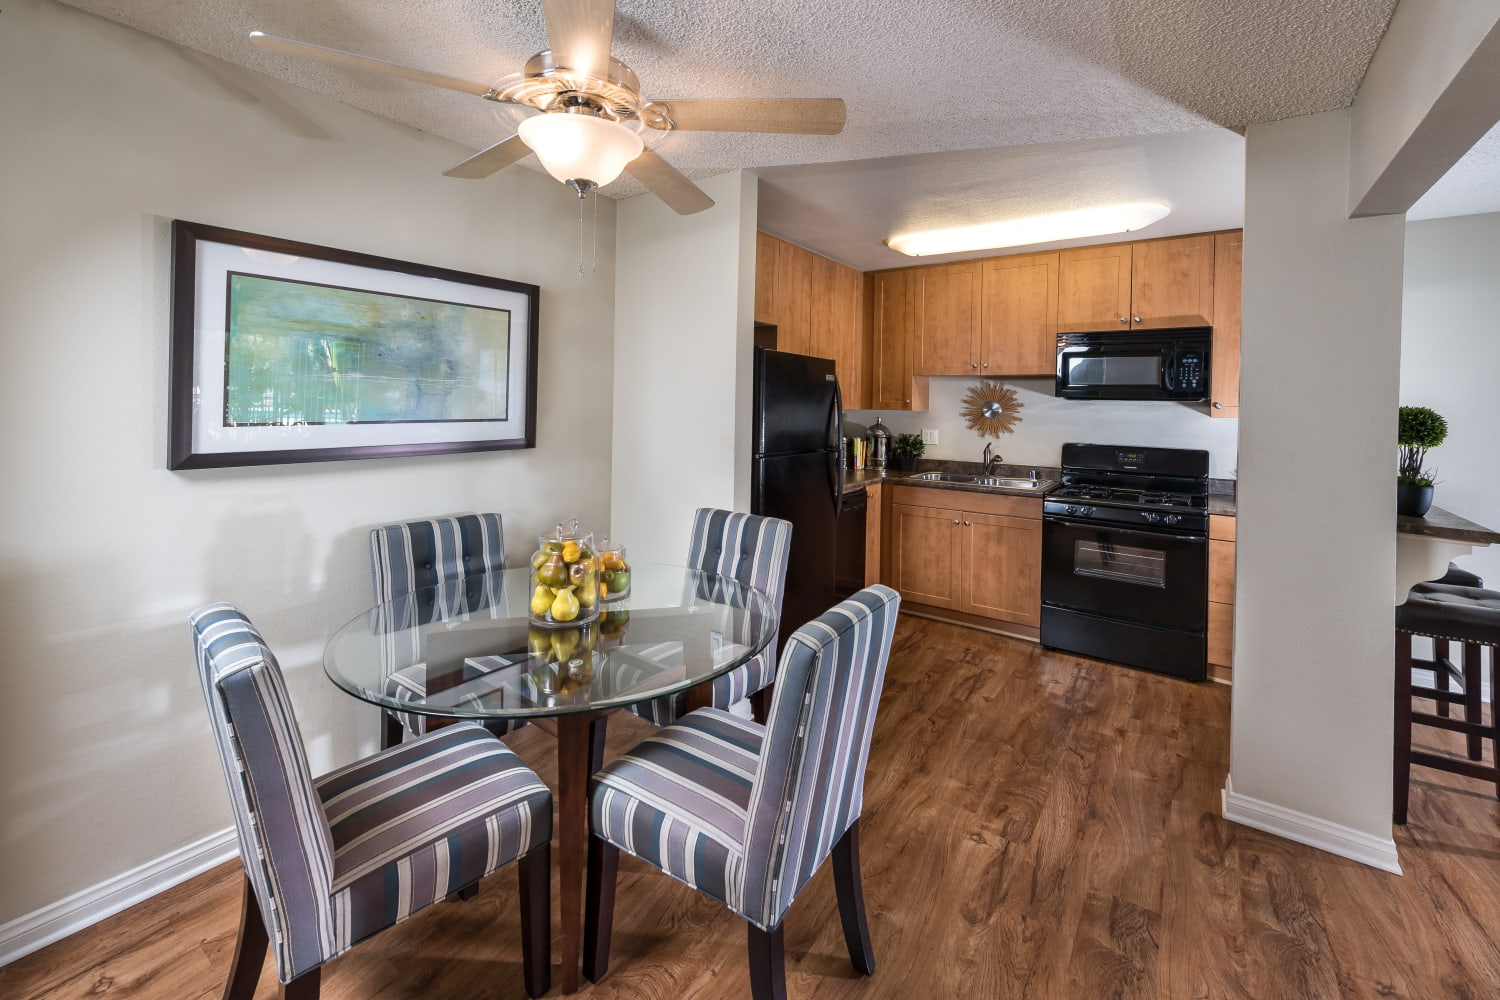 Spacious dining rooms at UCE Apartment Homes in Fullerton, California, complete with hardwood floors